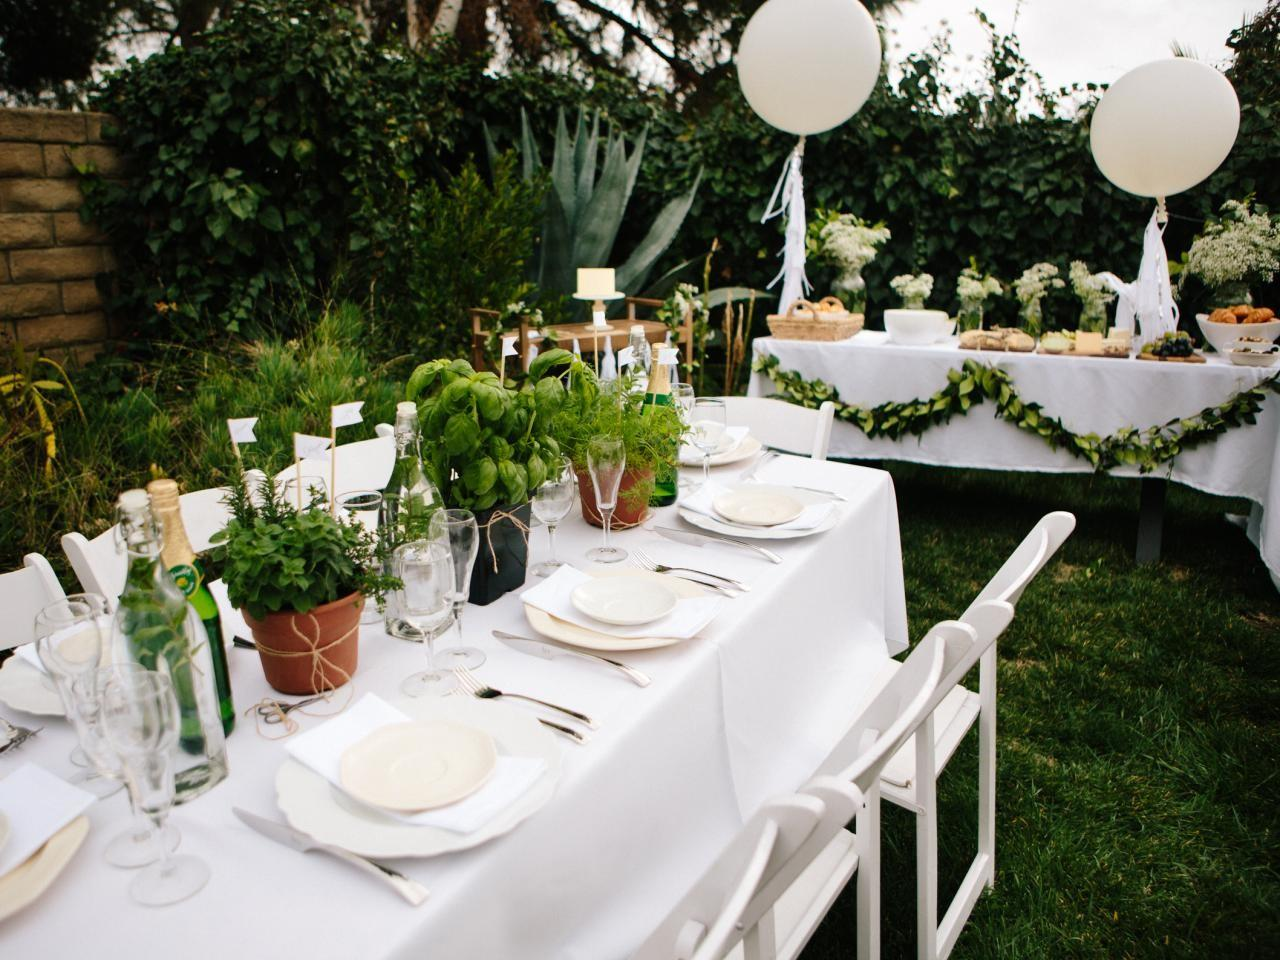 Plan French Inspired All White Baby Shower